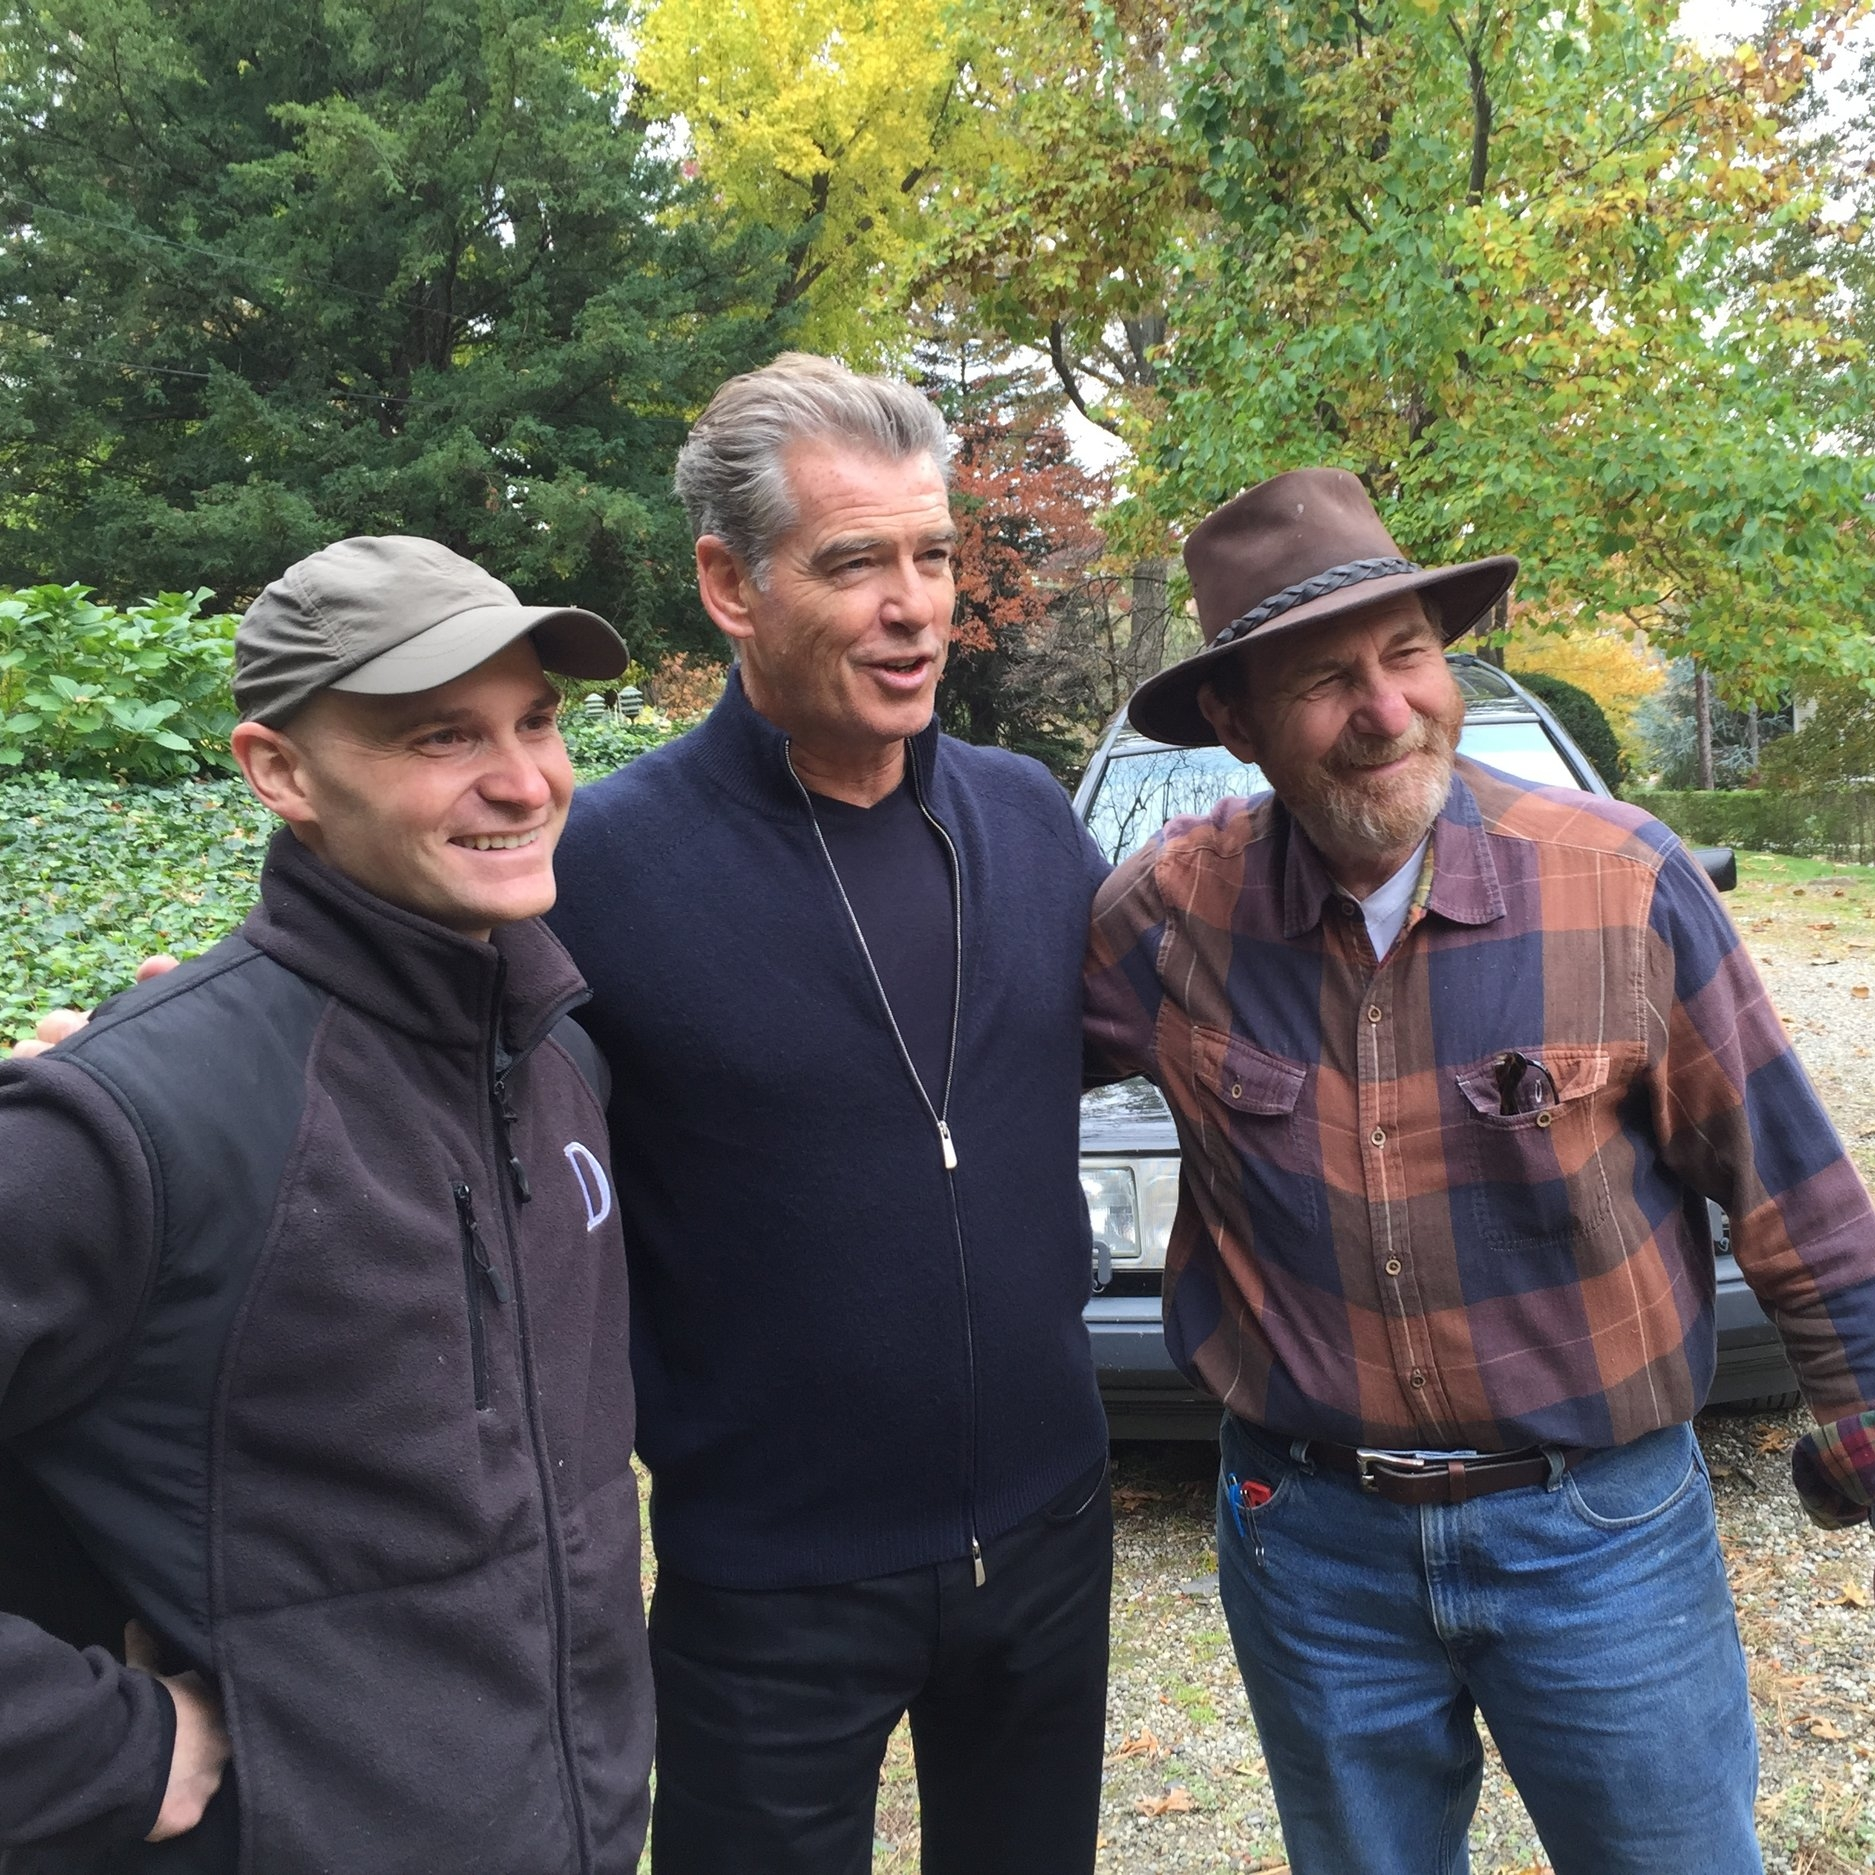 Actor Pierce Brosnan, friend of a client, randomly showed up at the work site of this historic Englewood estate, which had been designed by the late Frederick Law Olmsted, arguably the father of American landscape architecture.